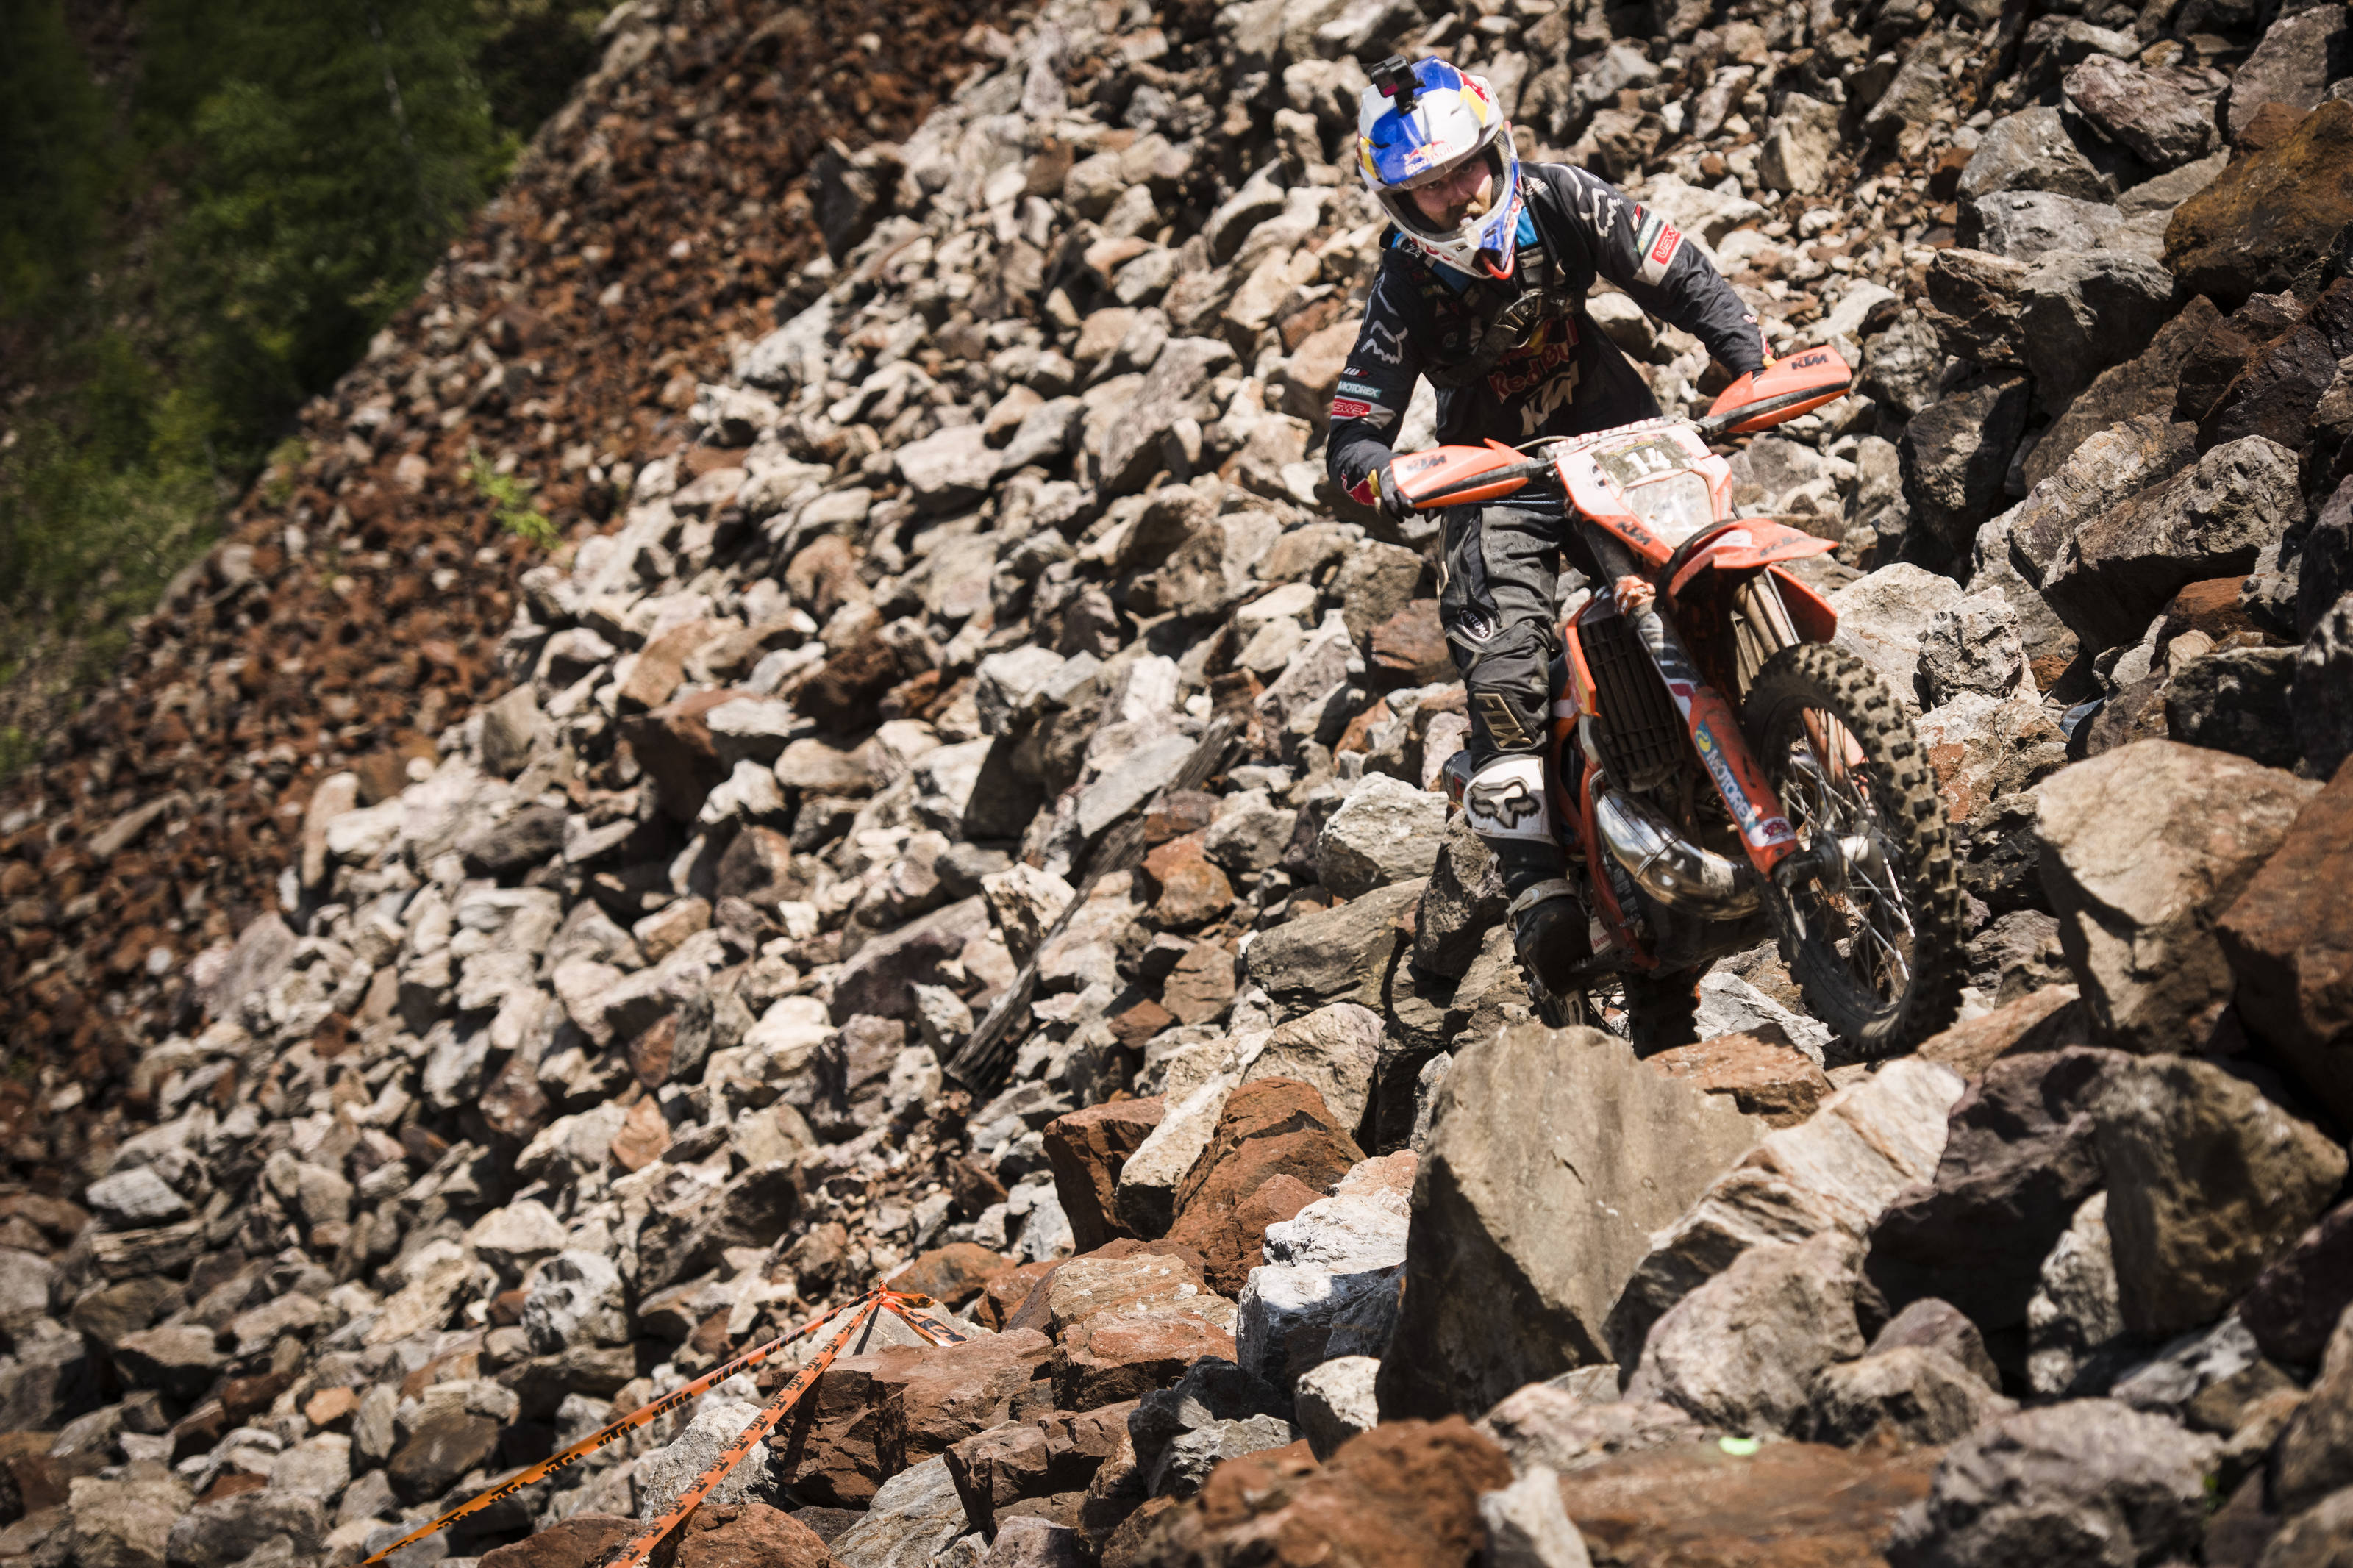 AP-1VV5SZJM52111_news Graham Jarvis cucerește Erzbergrodeo Red Bull Hare Scramble